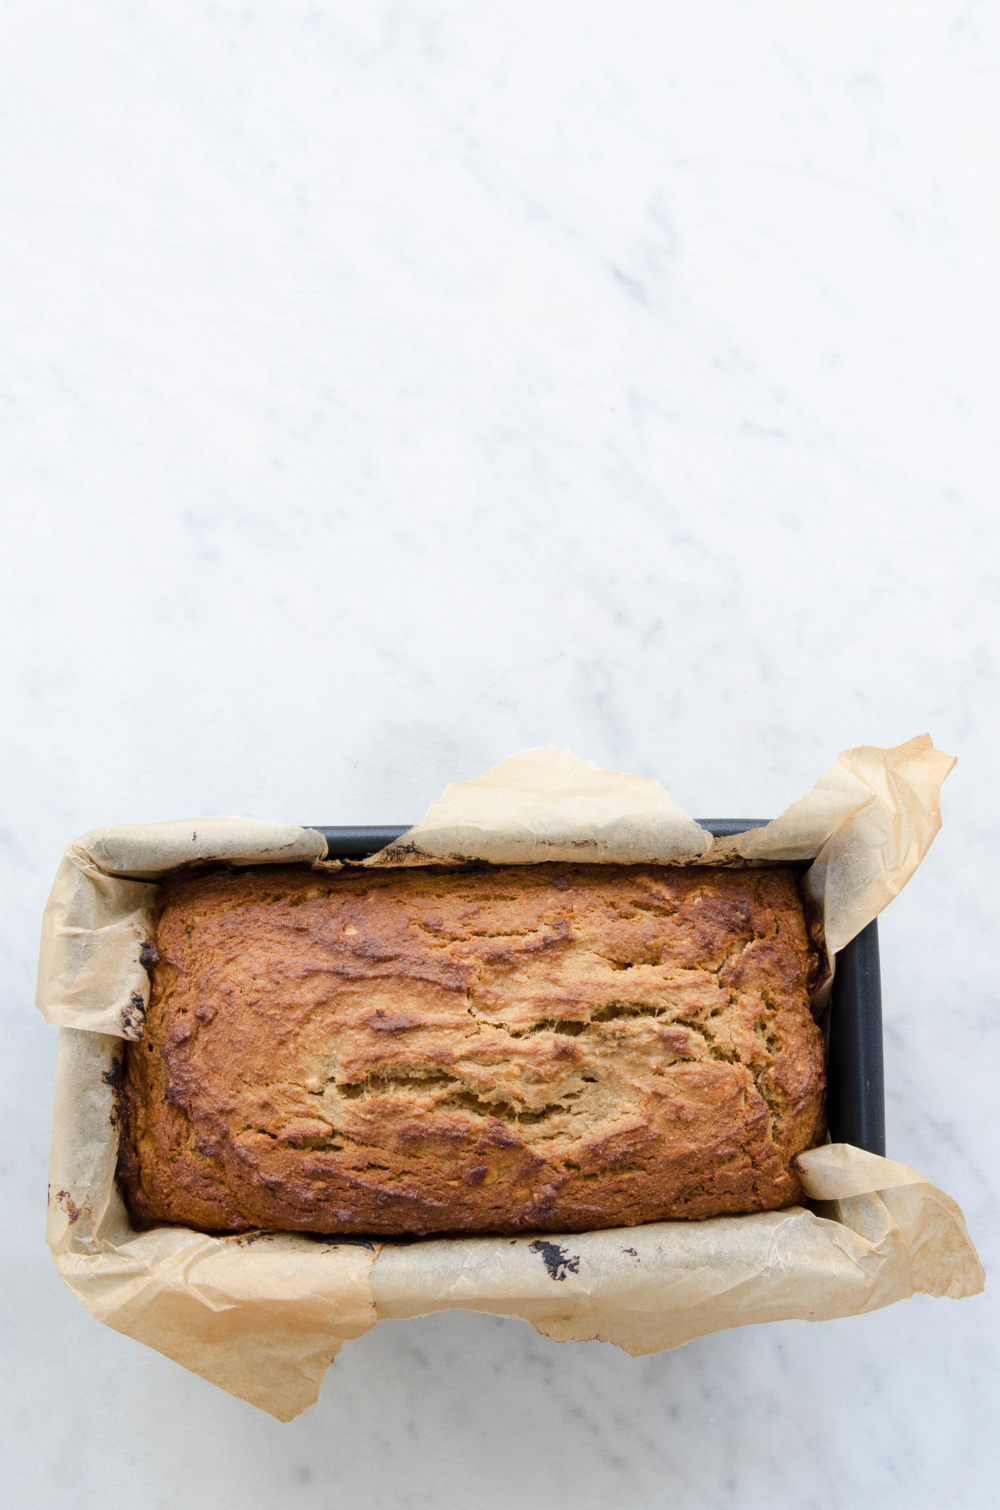 Gluten Free Peanut Butter Banana Bread recipe by Eat Real Food